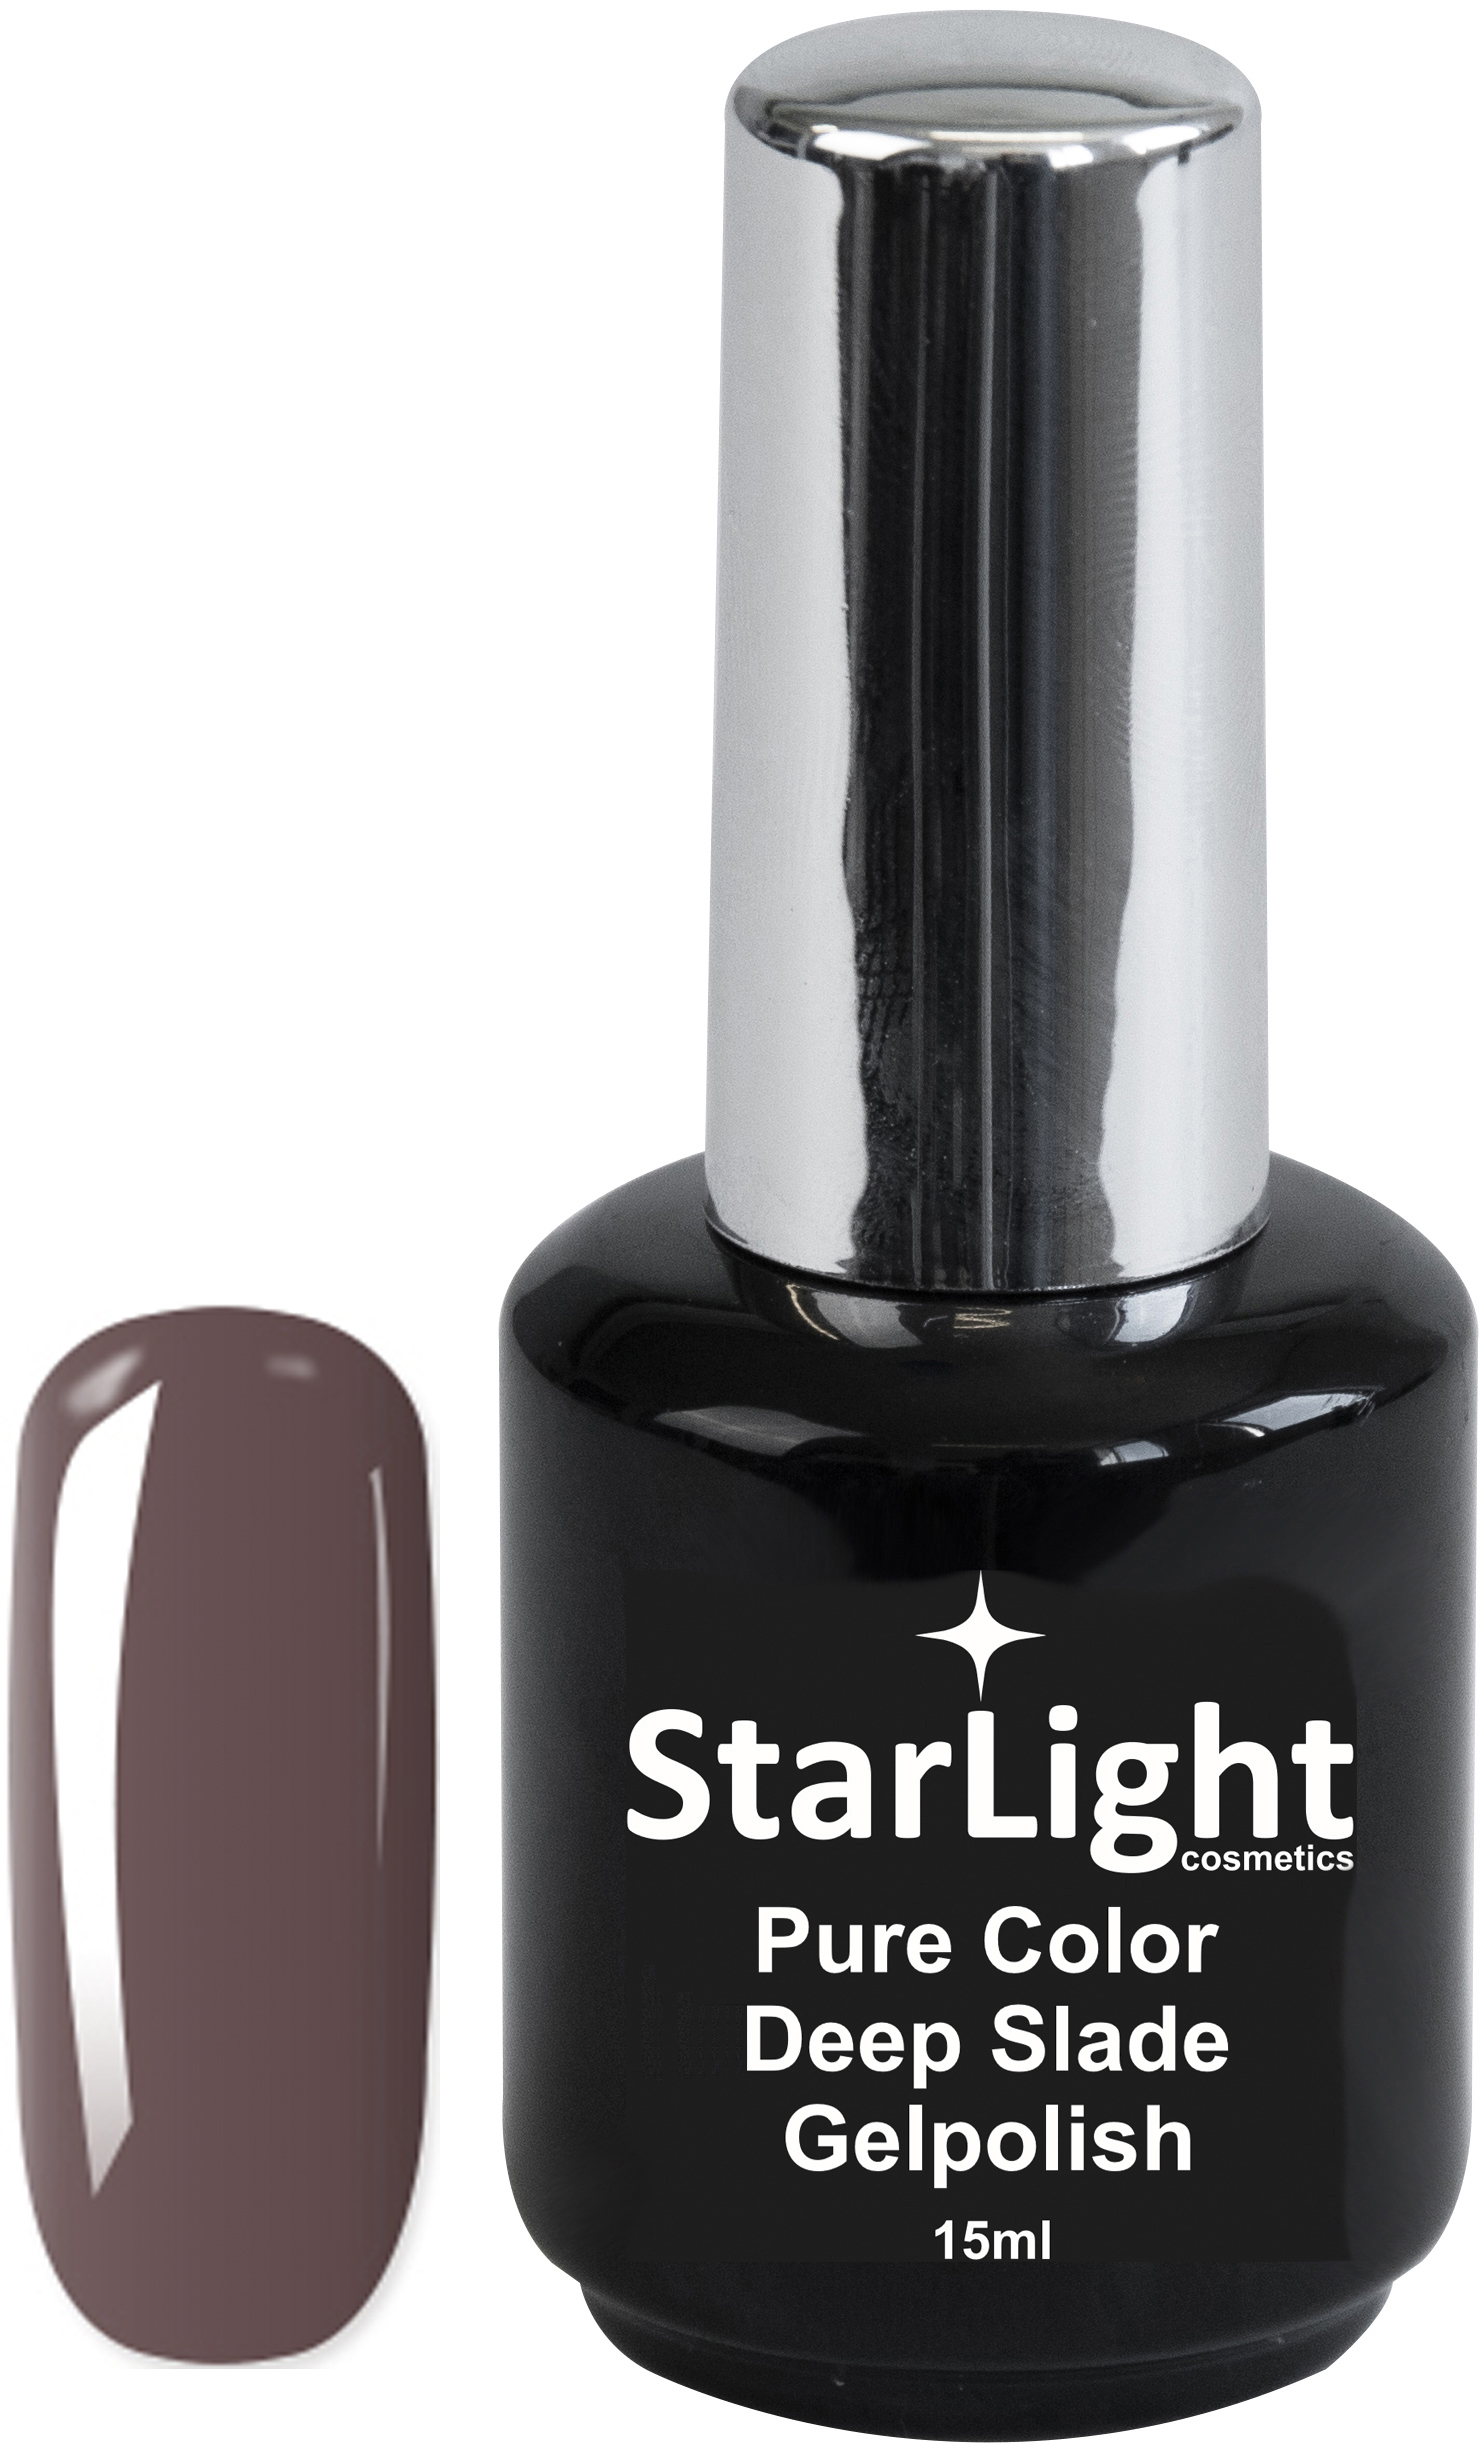 Naglar Gelpolish Pure Color Deep Slade - 15 ml